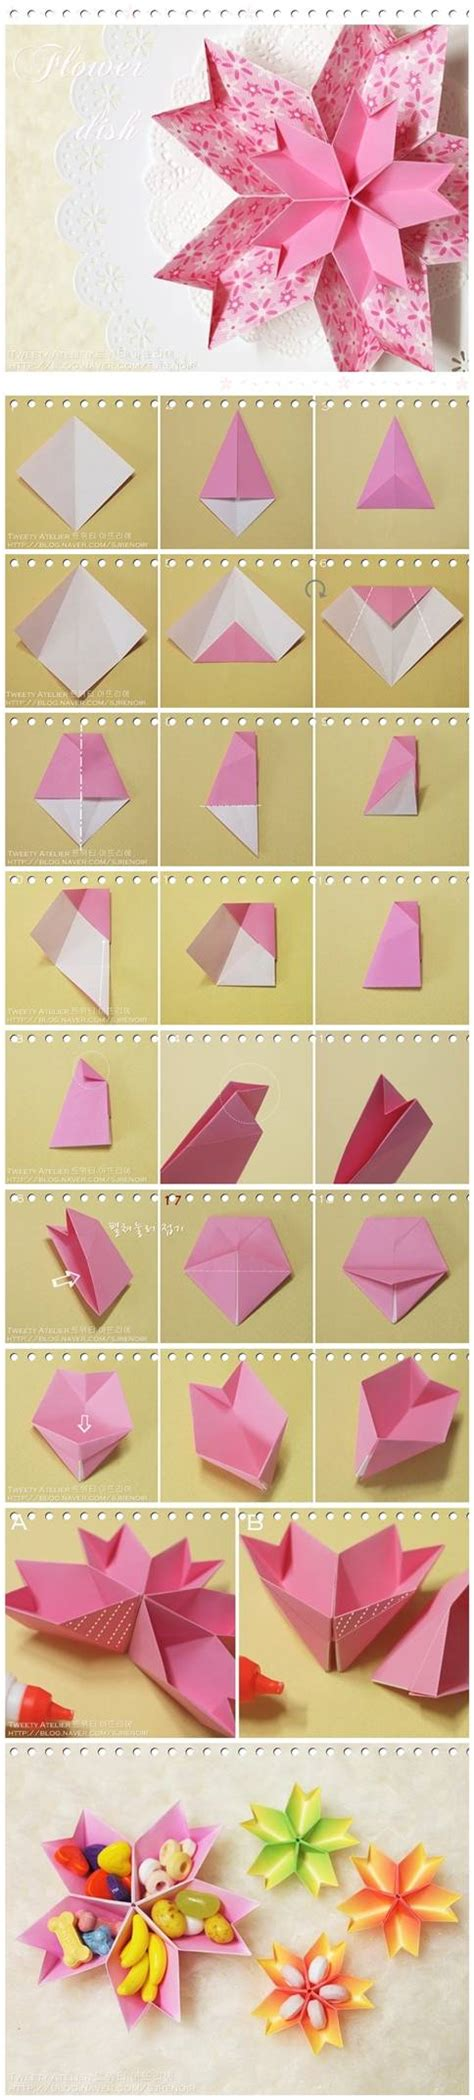 paper craft step by step how to make paper flower dish step by step diy tutorial